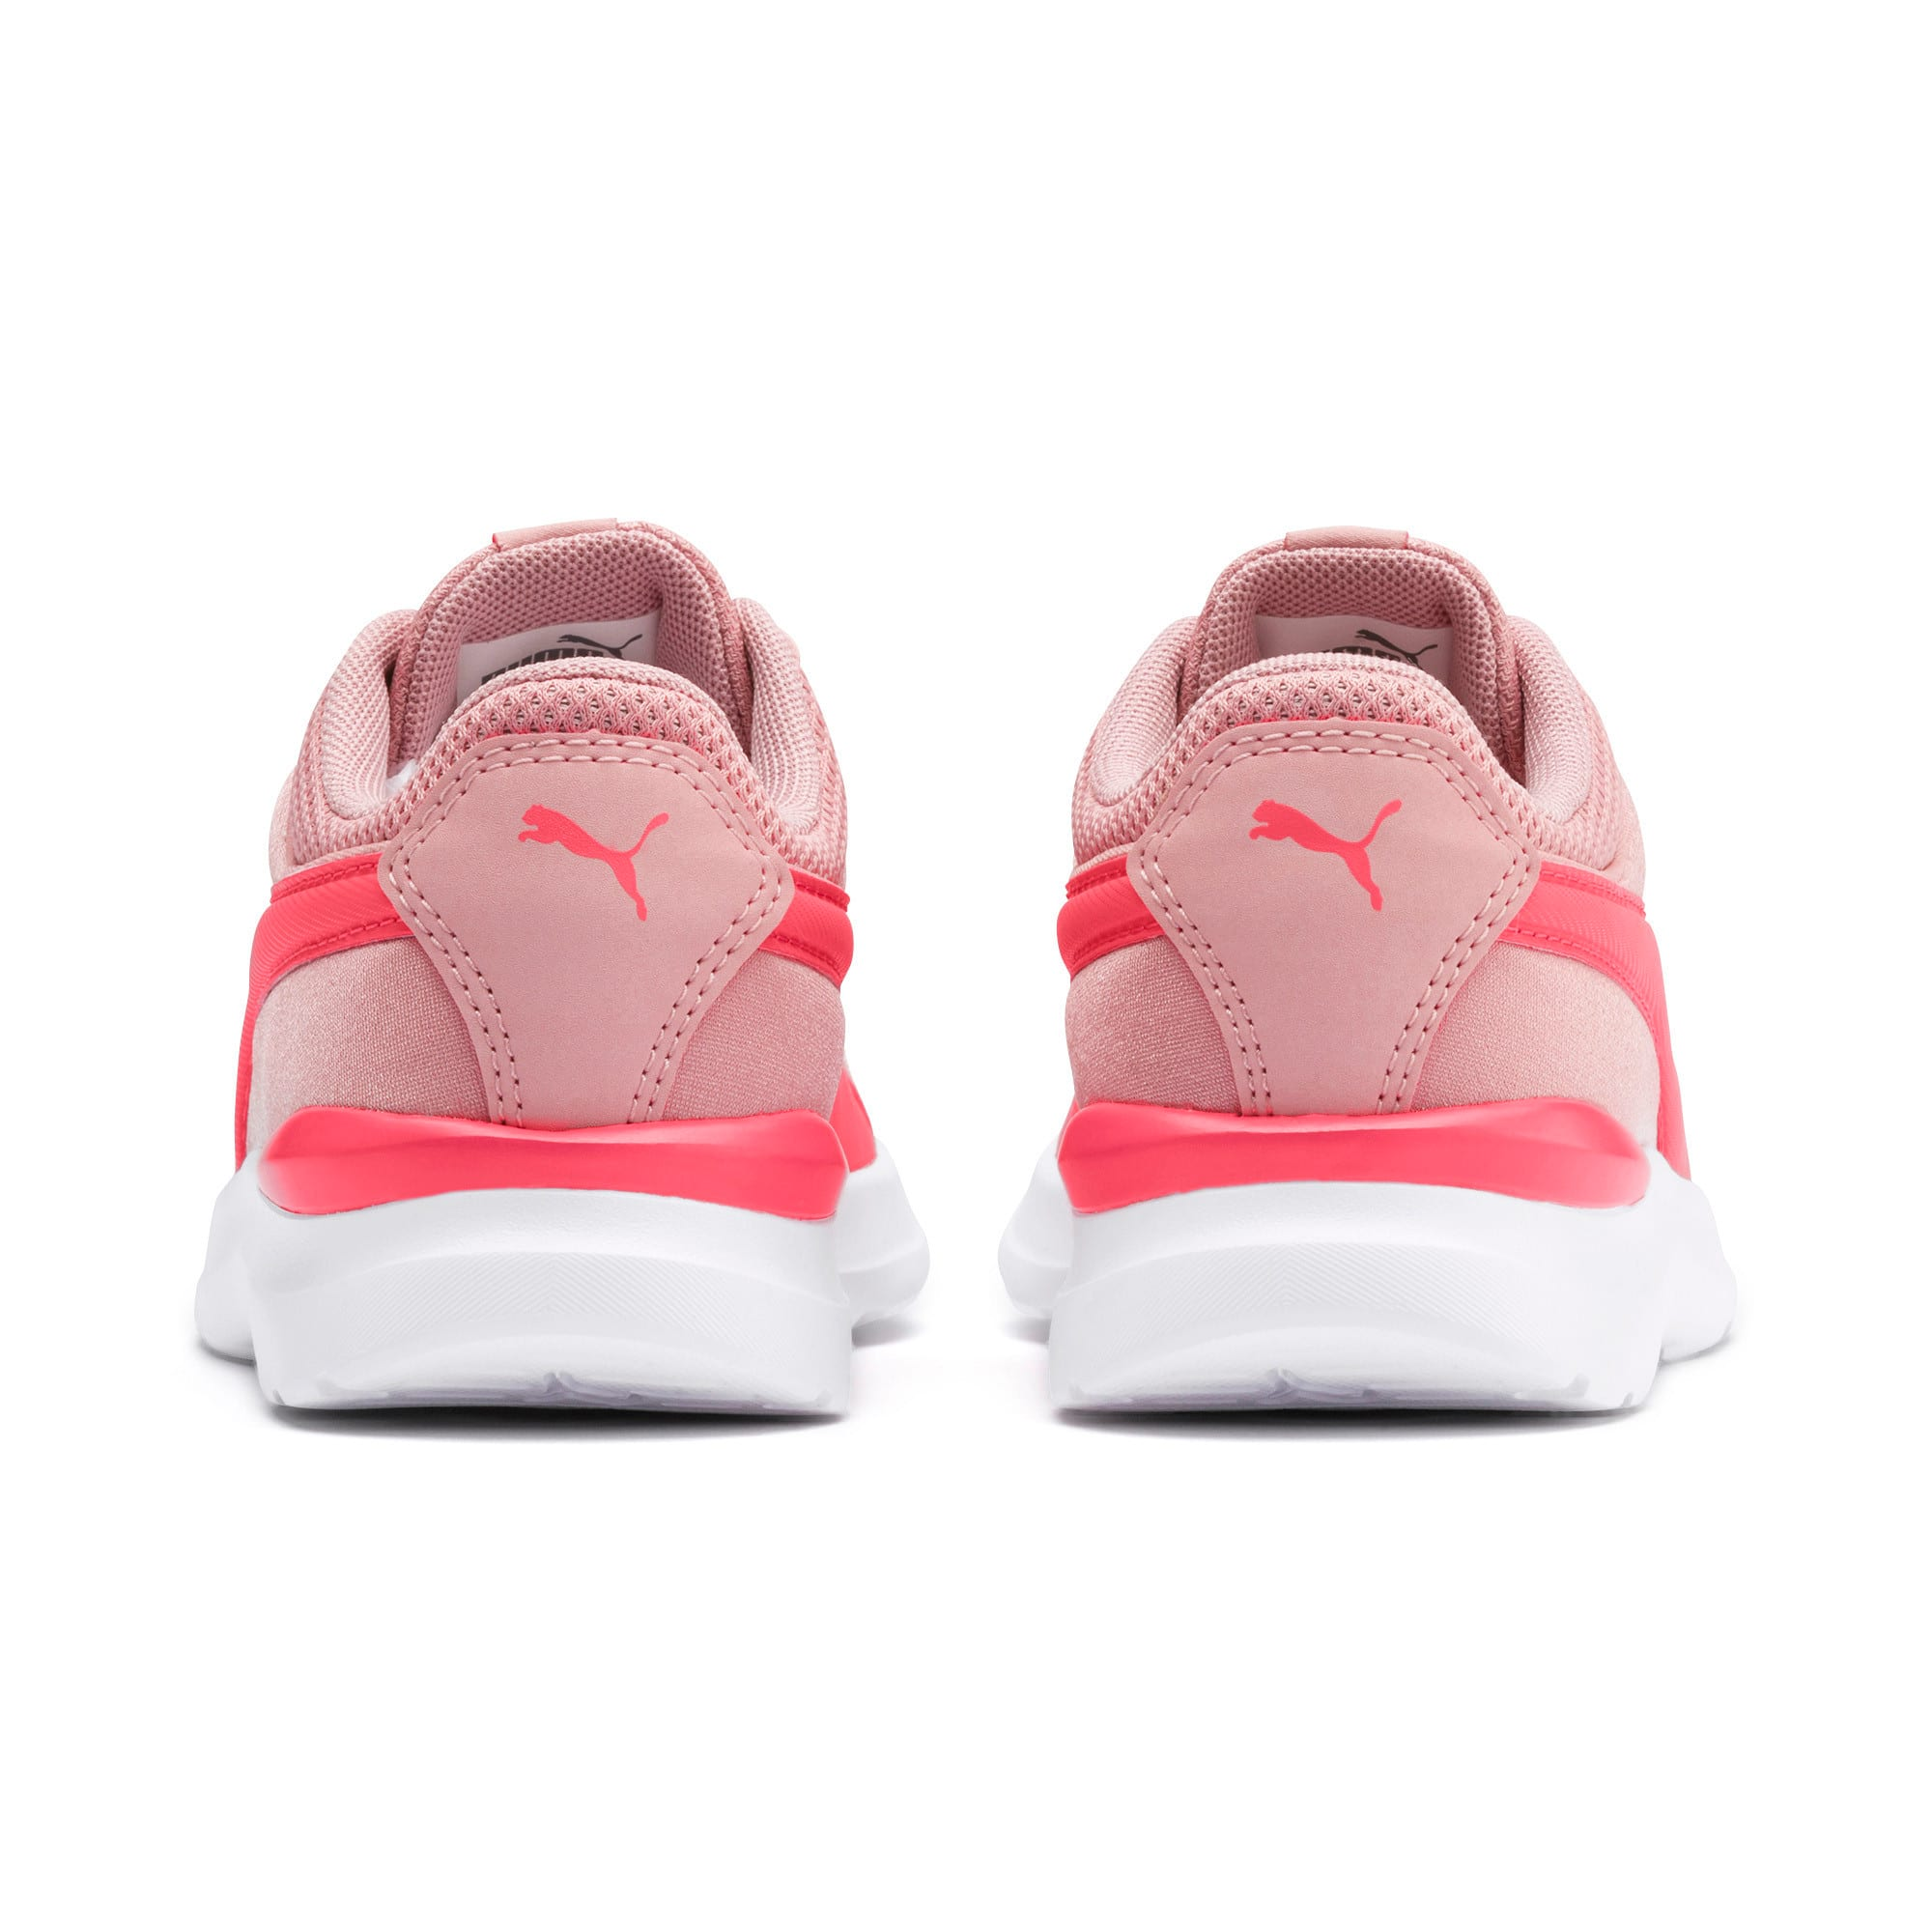 Thumbnail 3 of Adela Girls' Trainers, Bridal Rose-Calypso Coral, medium-IND